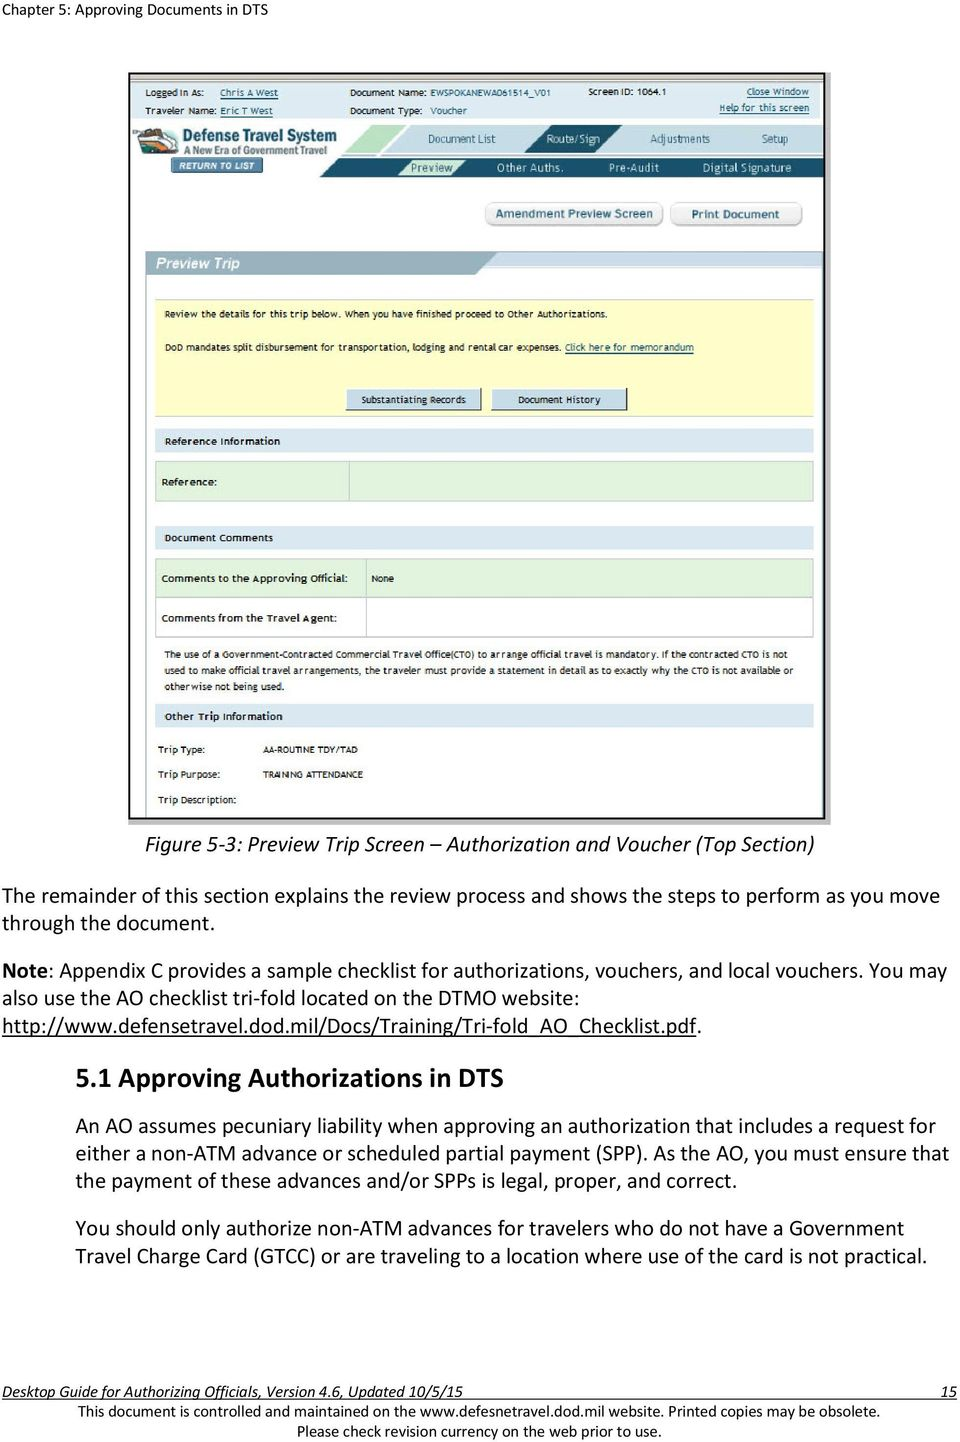 worksheet Constructed Travel Worksheet Dts defense travel training resources desktop guide for authorizing you may also use the ao checklist tri fold located on dtmo website